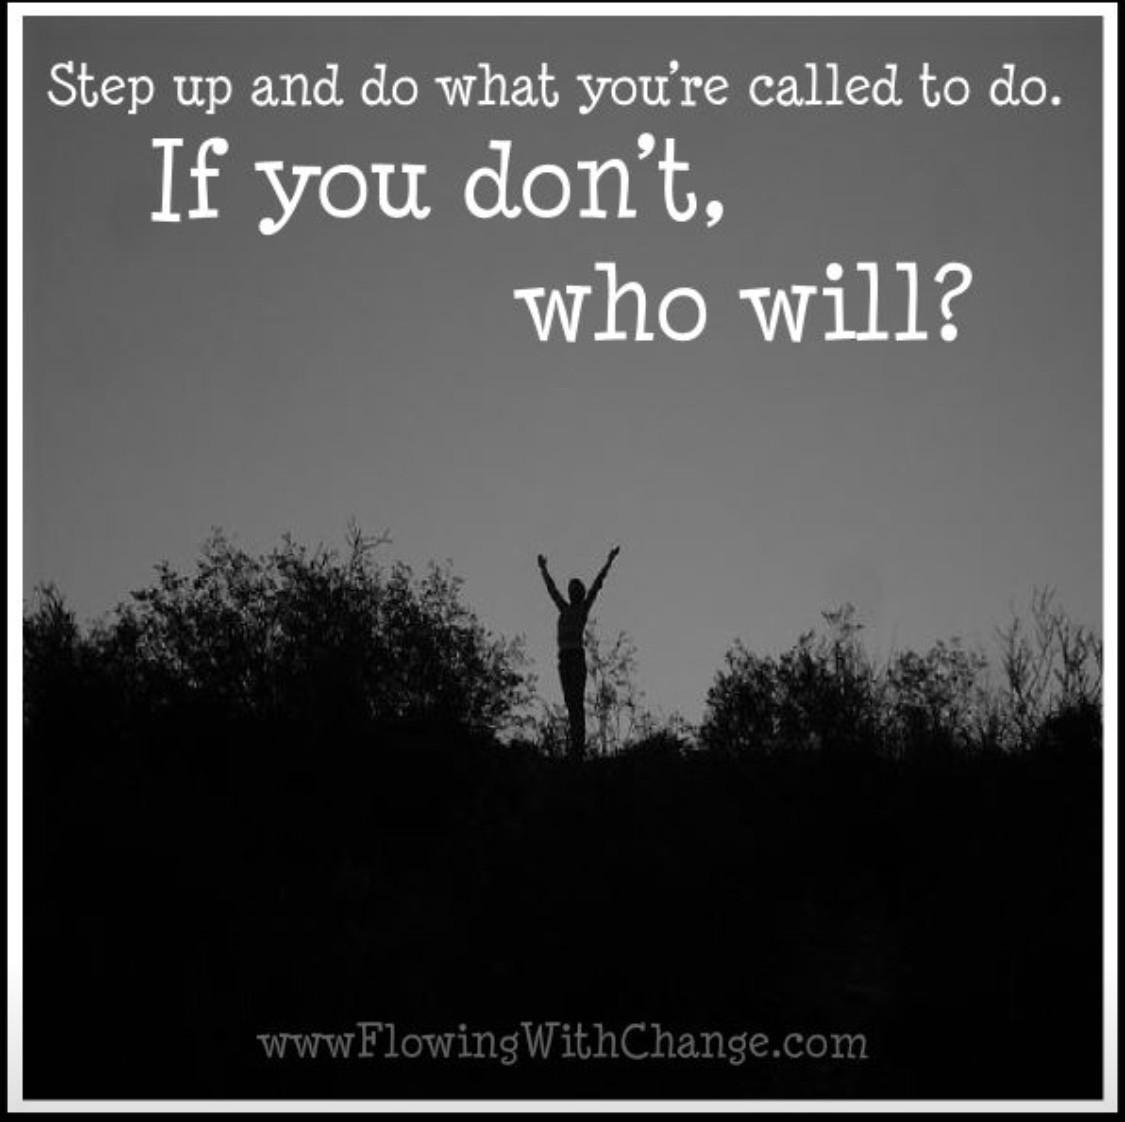 What will you look forward to today? You gotta empower yourself and start with something.